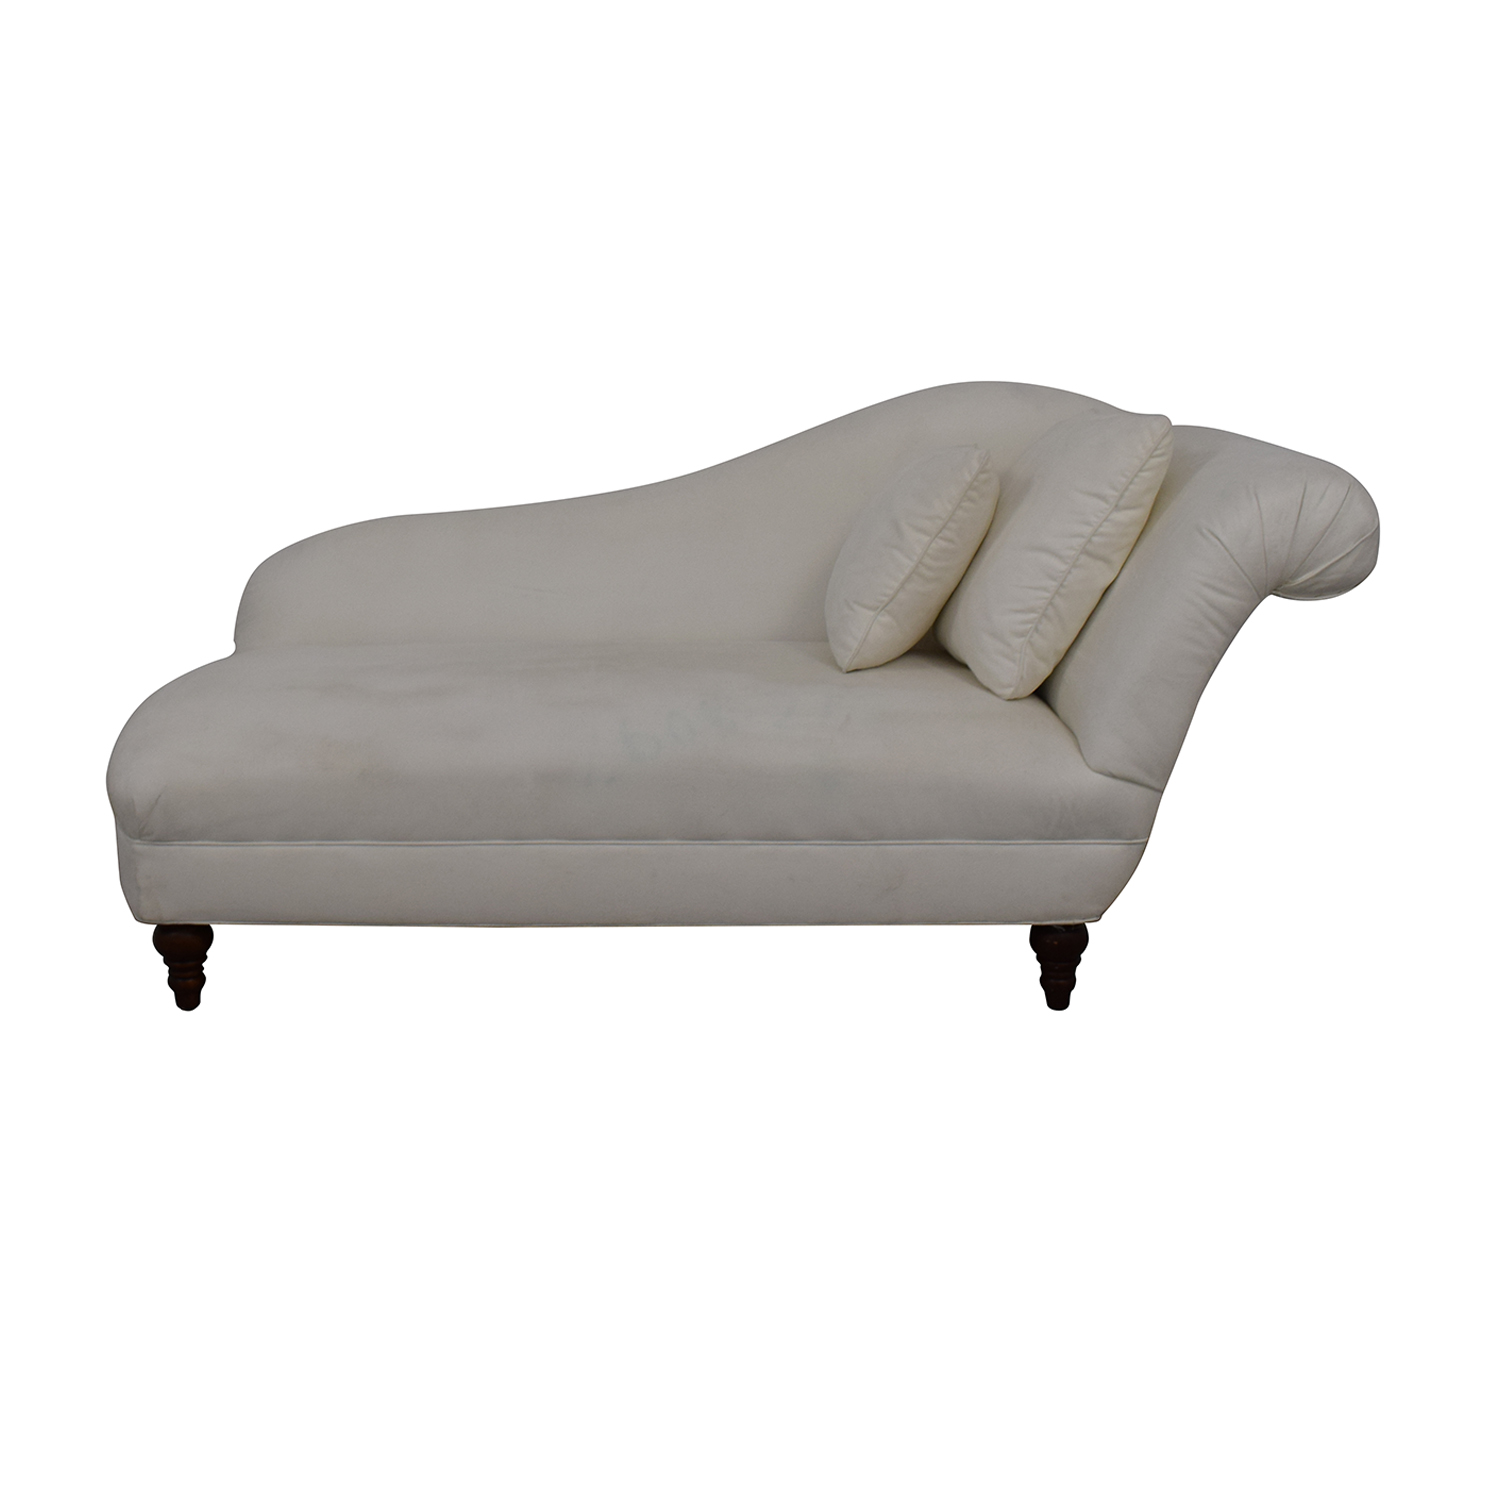 Fairfield Chair Company Fairfield Chair Company Living Room White Chaise ma